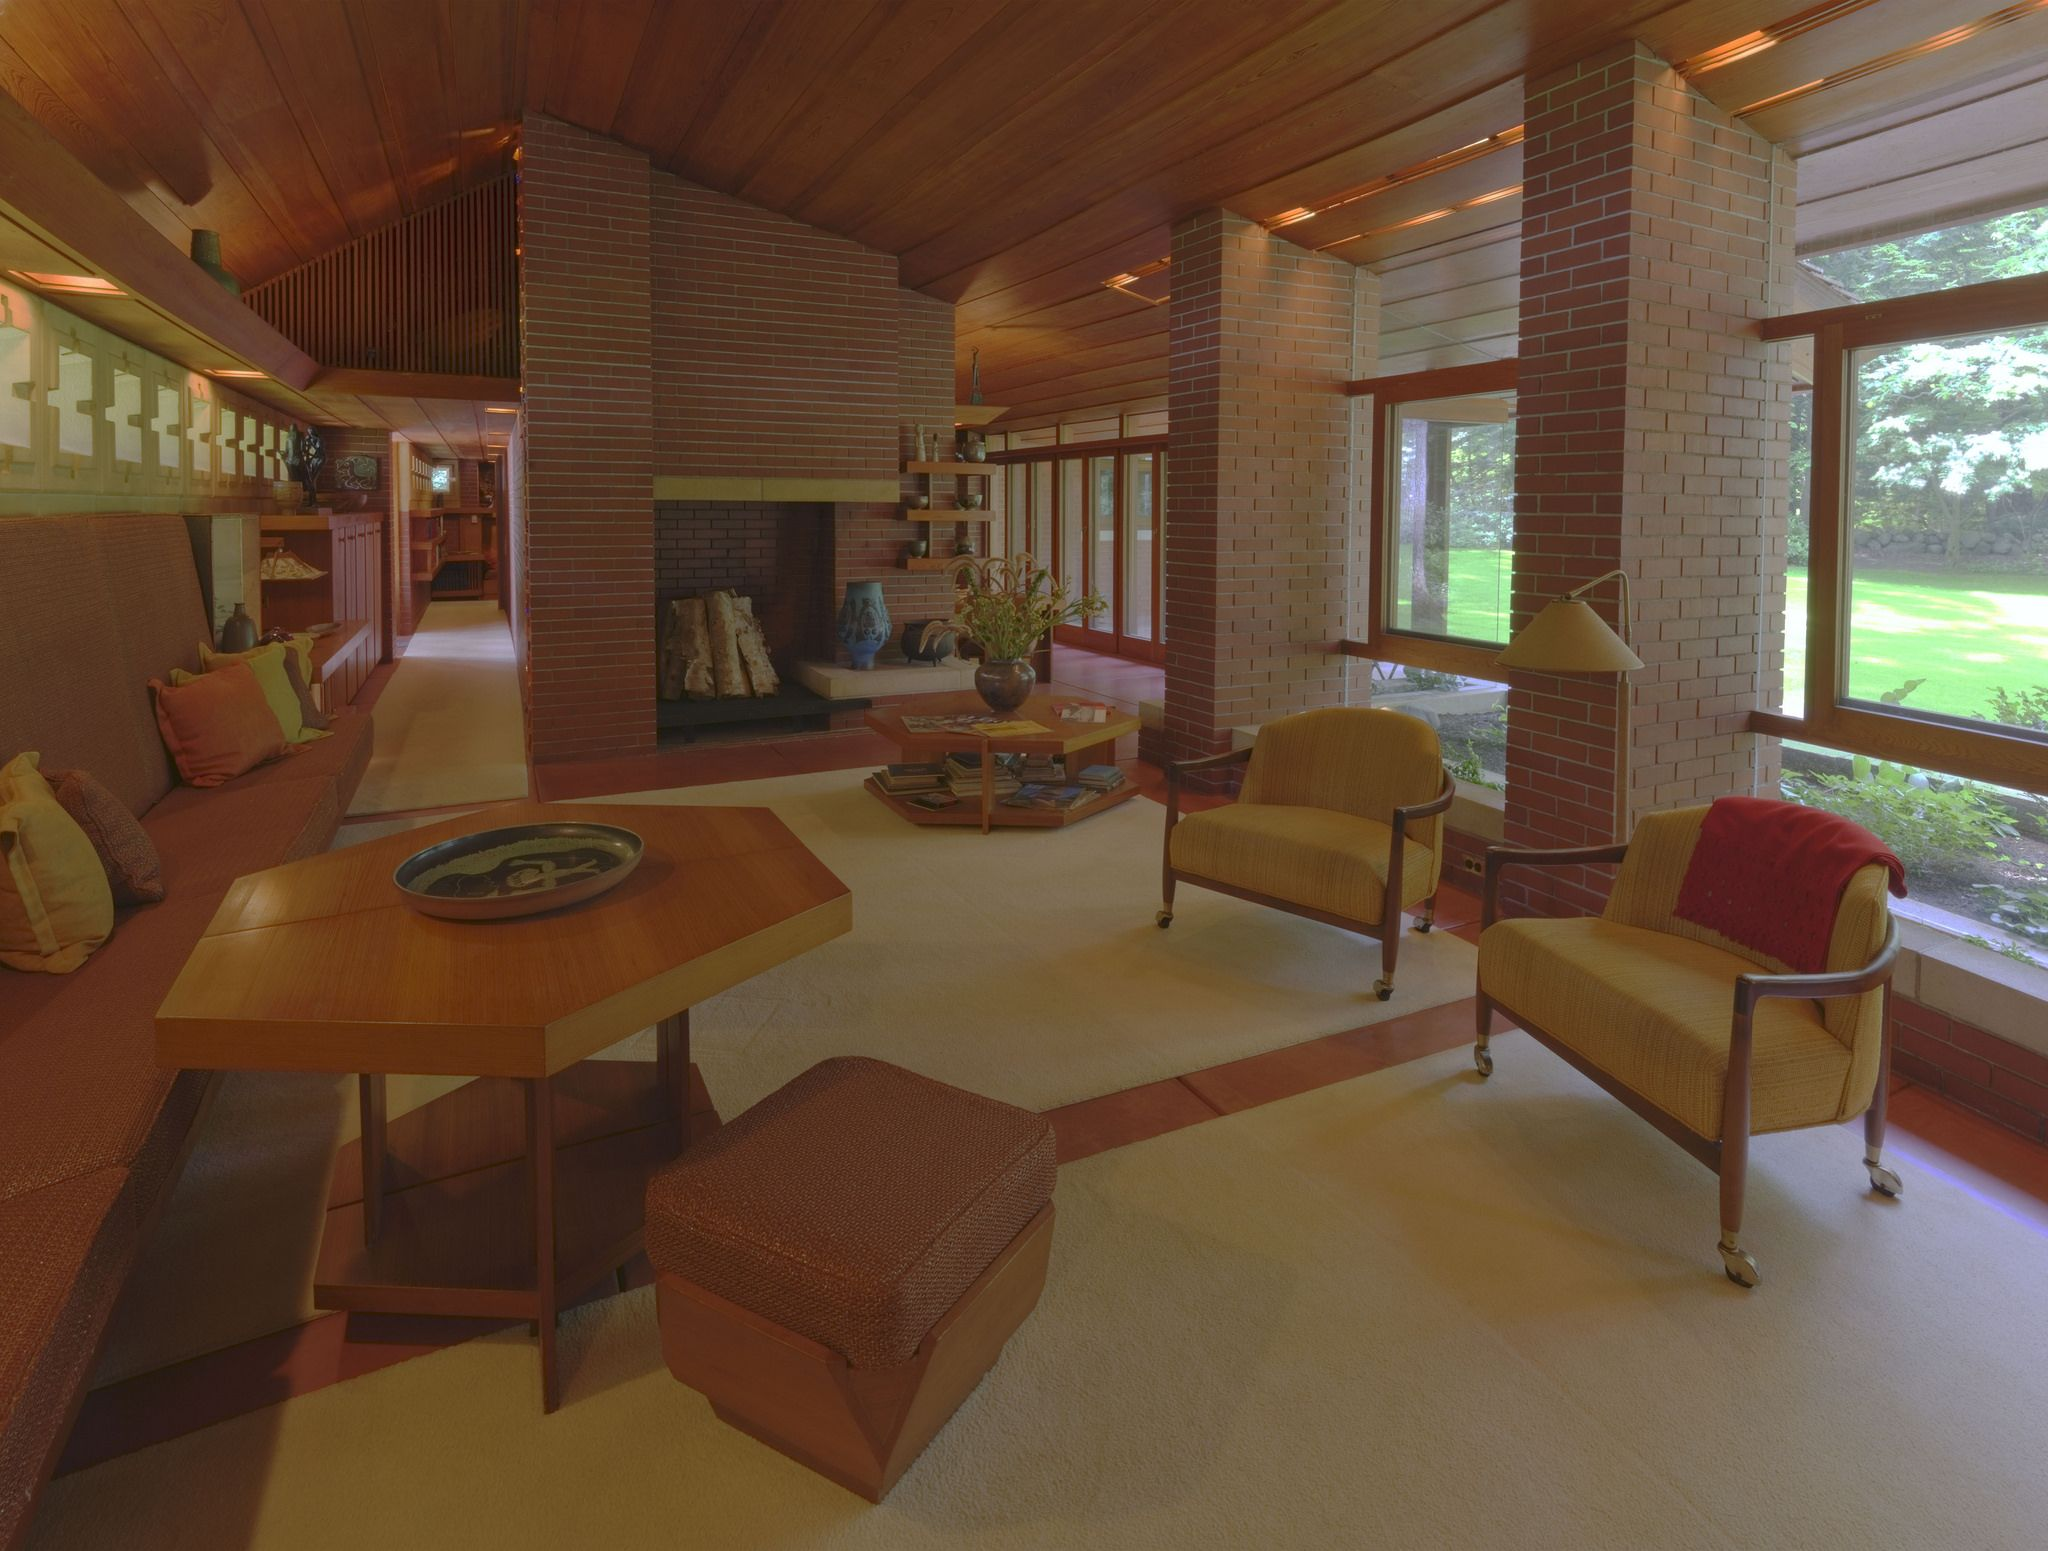 The Gropius House And Mid Century Modern Homes You Can Tour